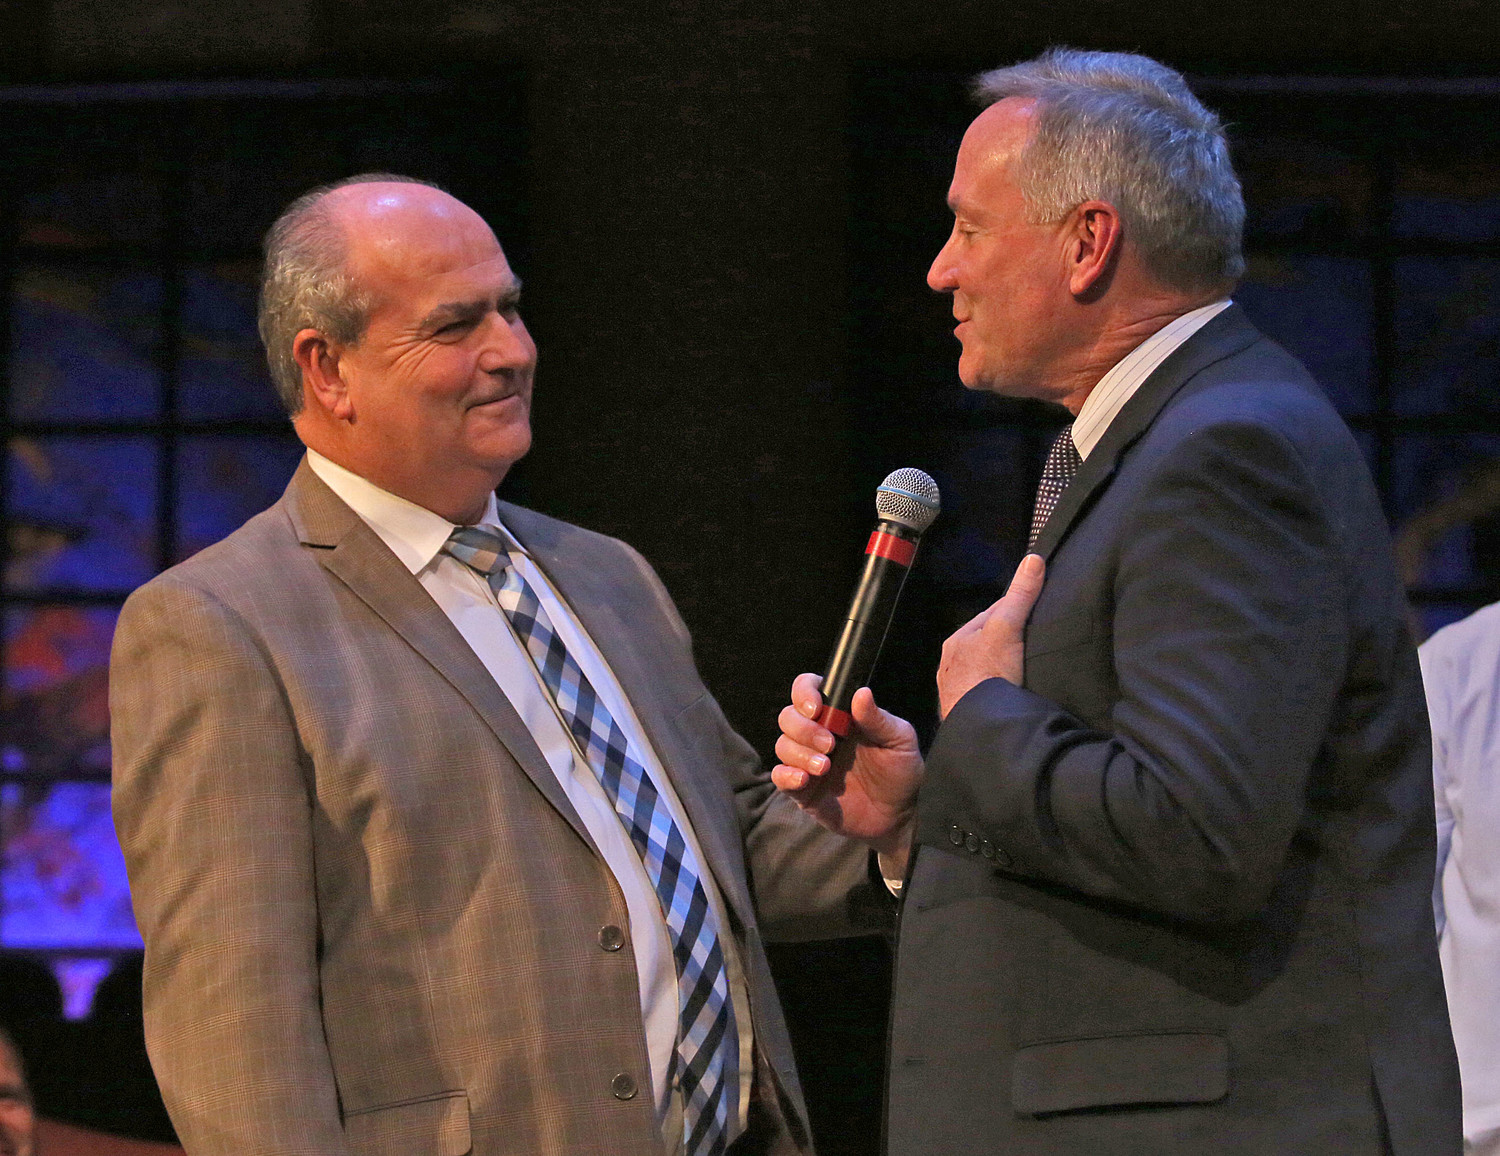 Outgoing Kentucky Baptist Convention President Bill Langley , right, congratulates incoming President Charles Frazier on his election at Tuesday's annual meeting at Highview Baptist Church's east campus in Louisville, Ky. (Kentucky Today/Robin Cornetet)